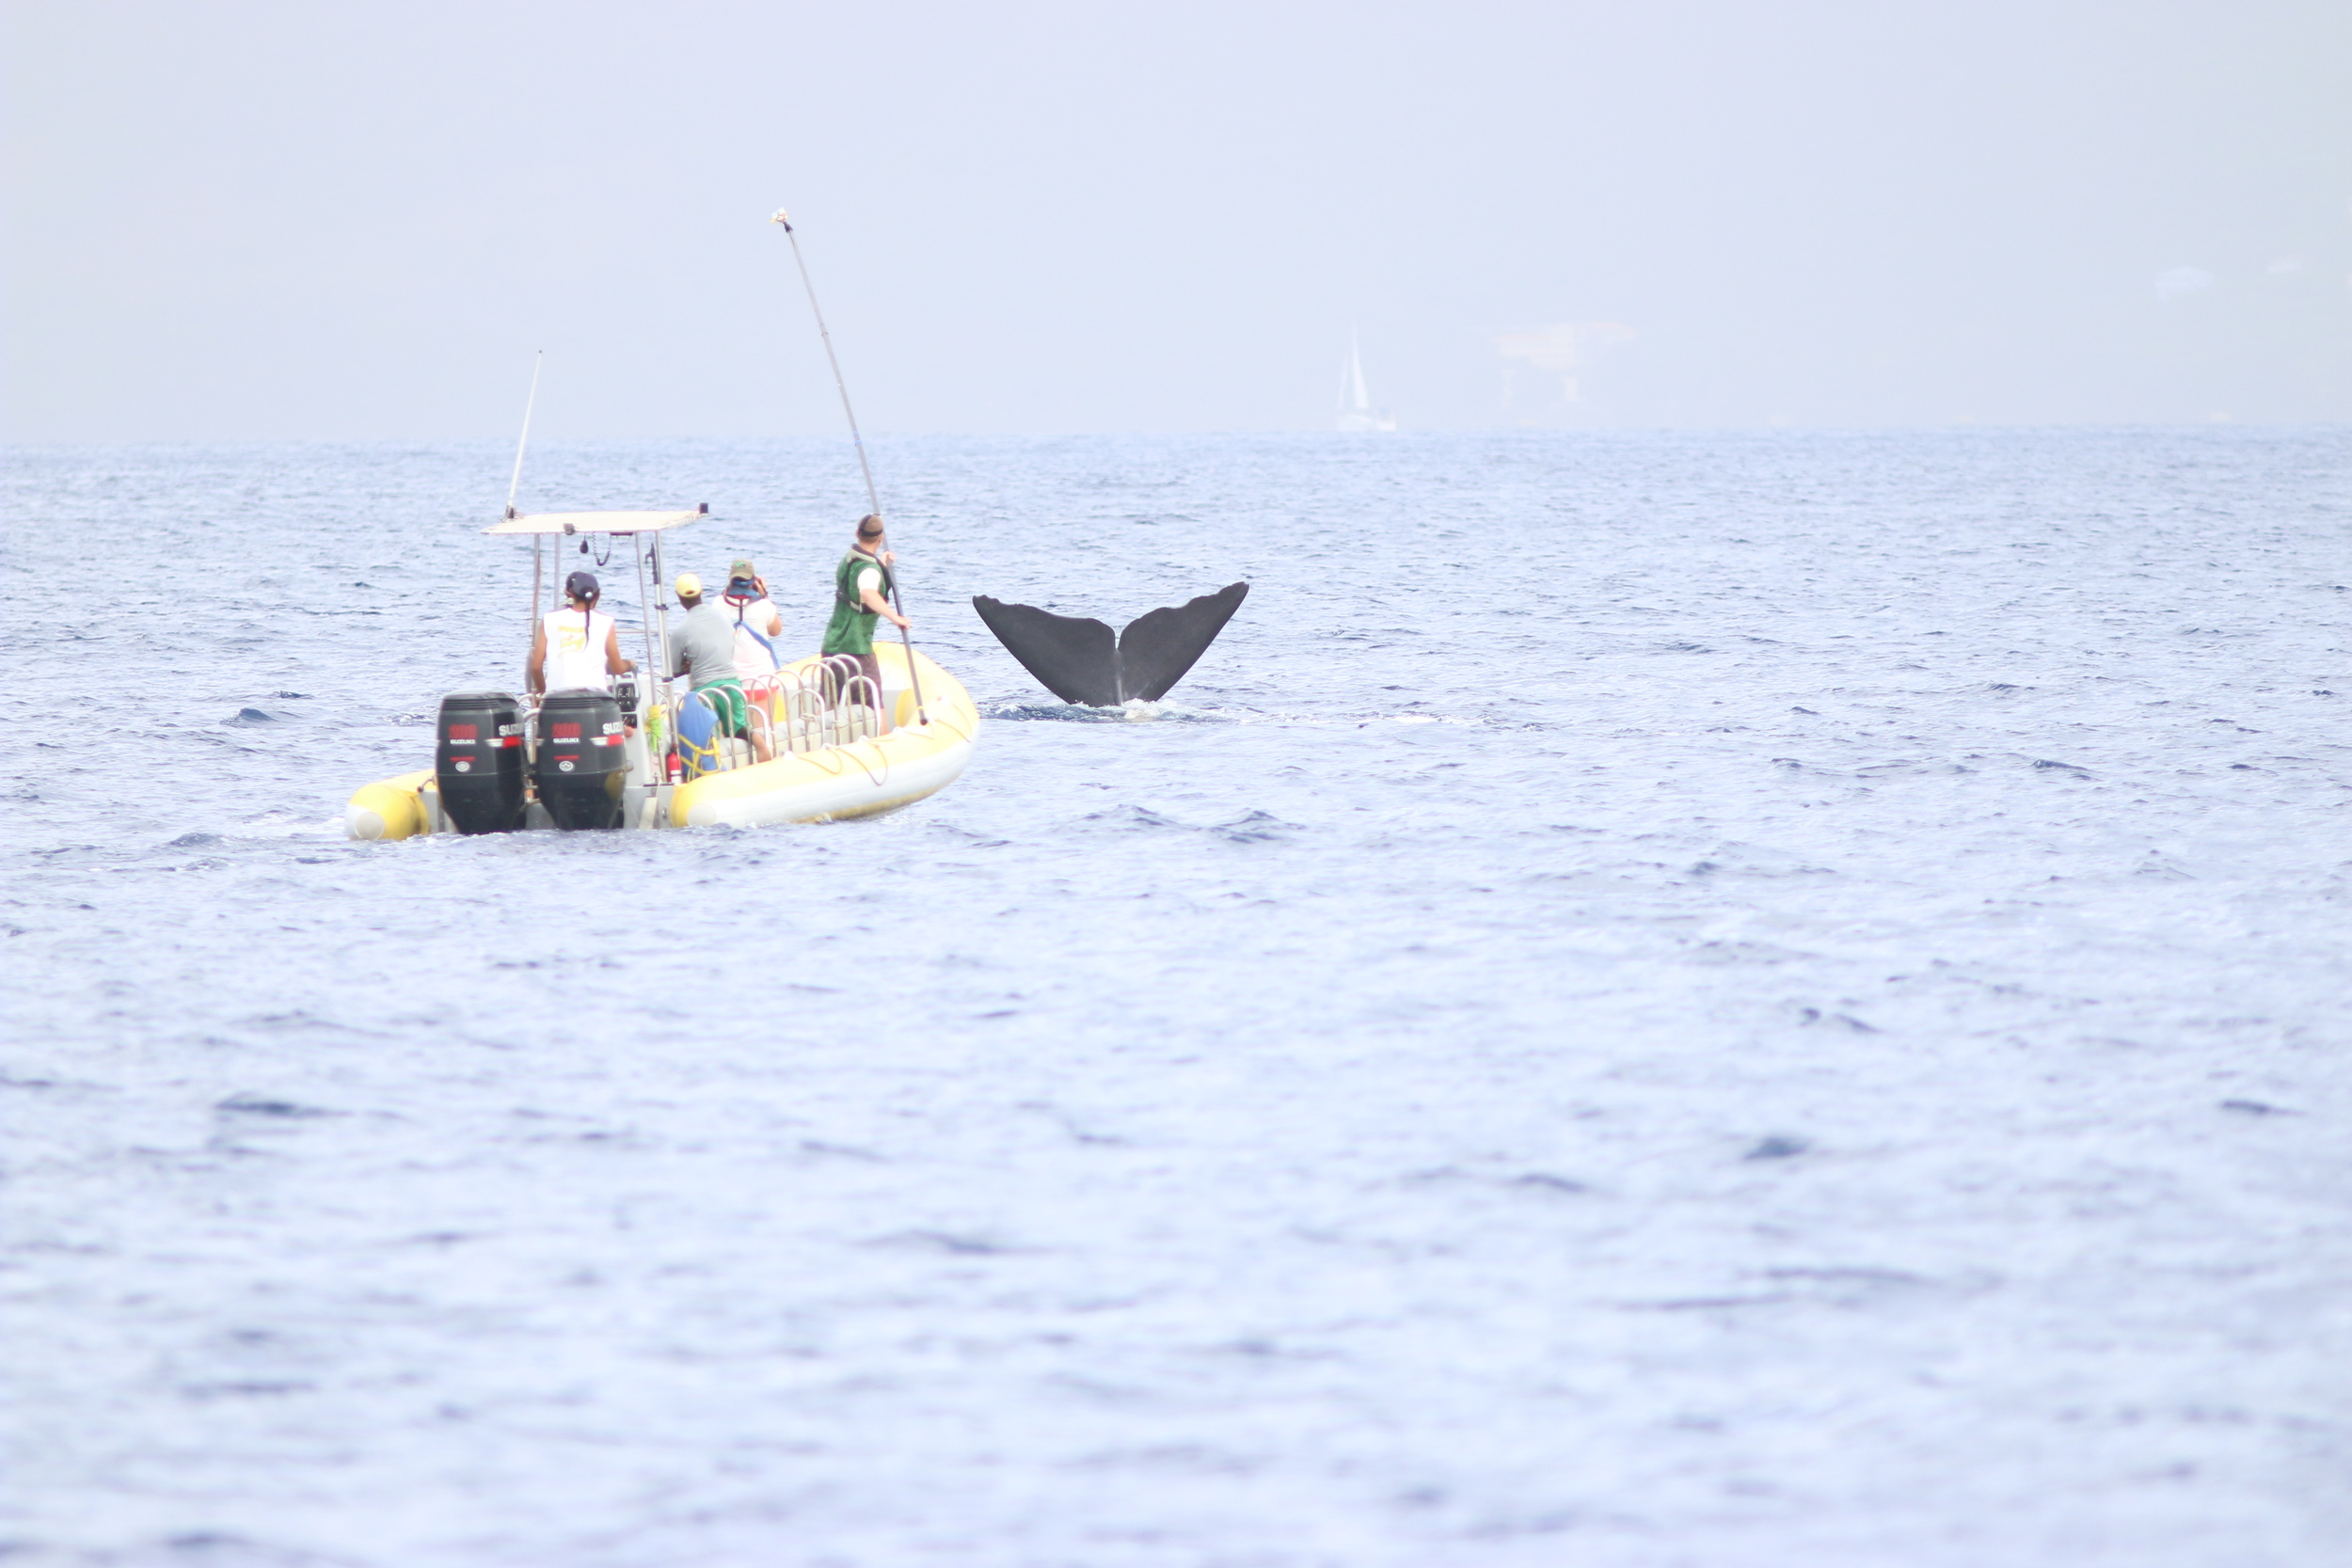 Sperm whale research off Dominica. Image: The Dominica Sperm Whale Project